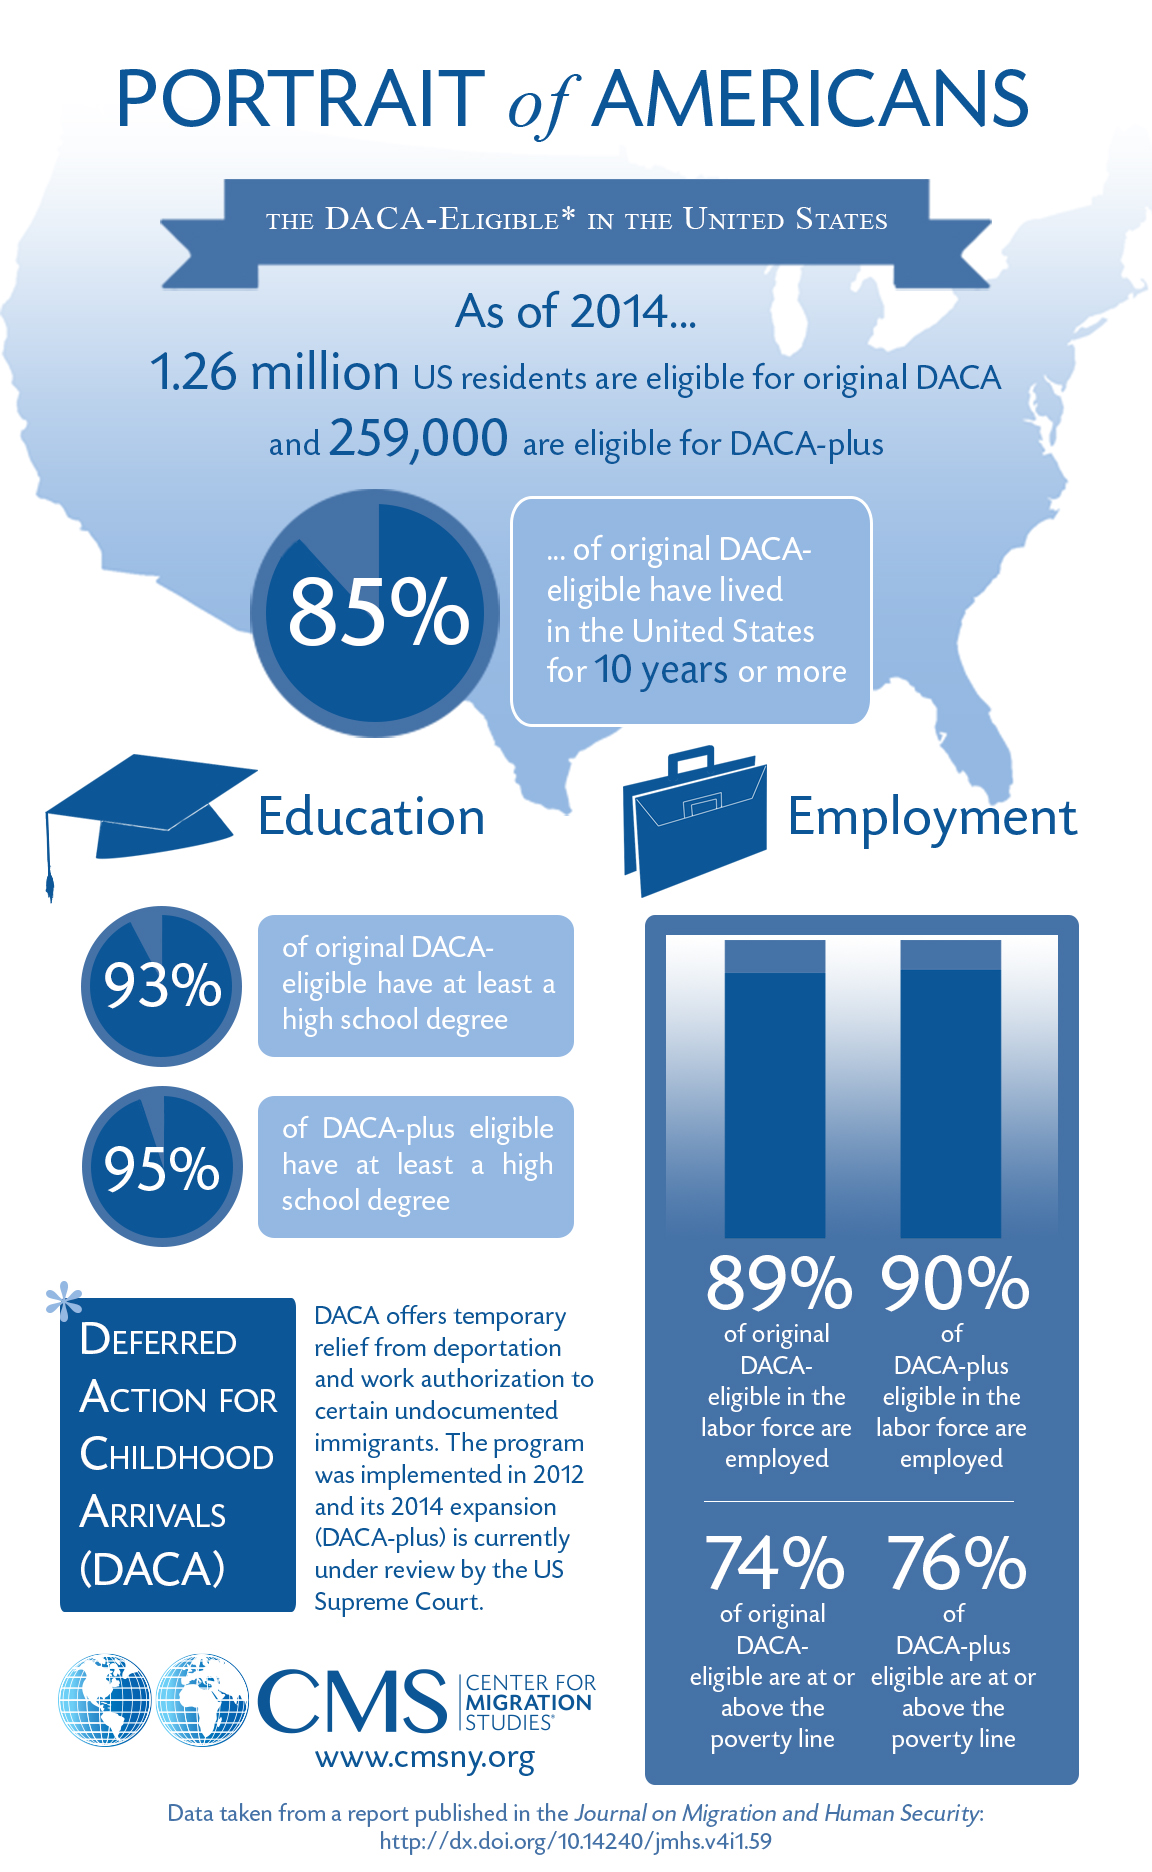 The DACA-Eligible